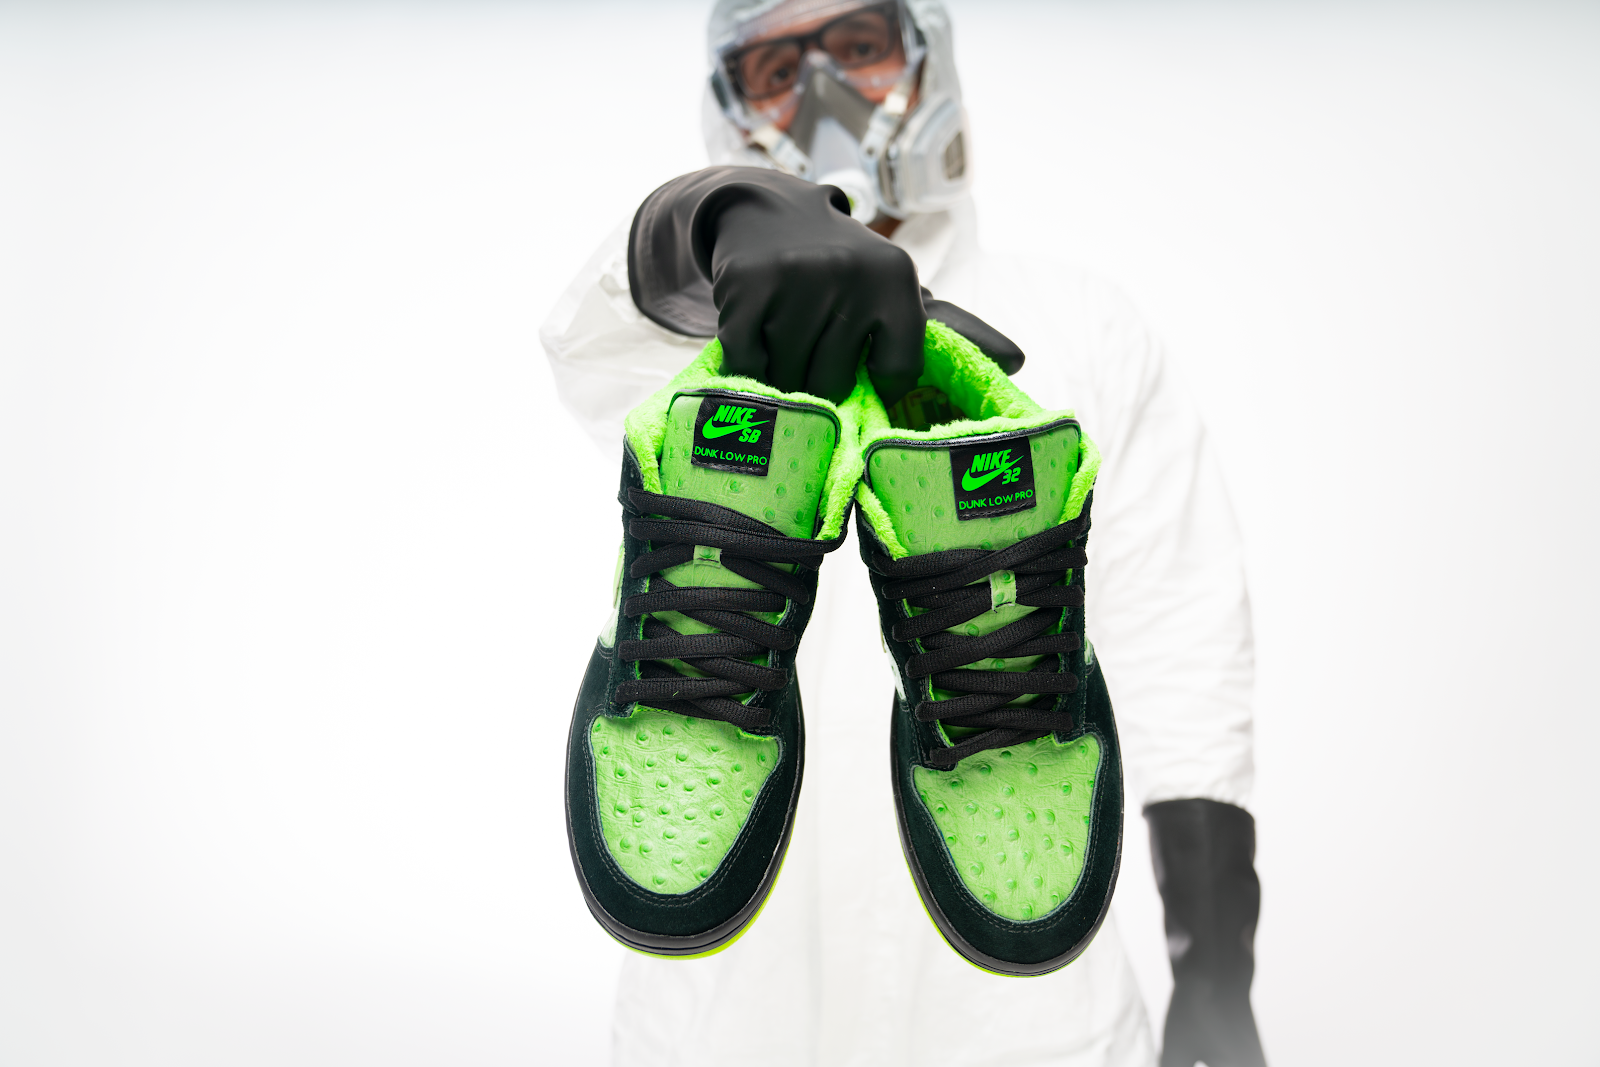 Barrios wears a hazard suit, face mask, and gloves while holding a pair of black and neon-green low-top Nikes.